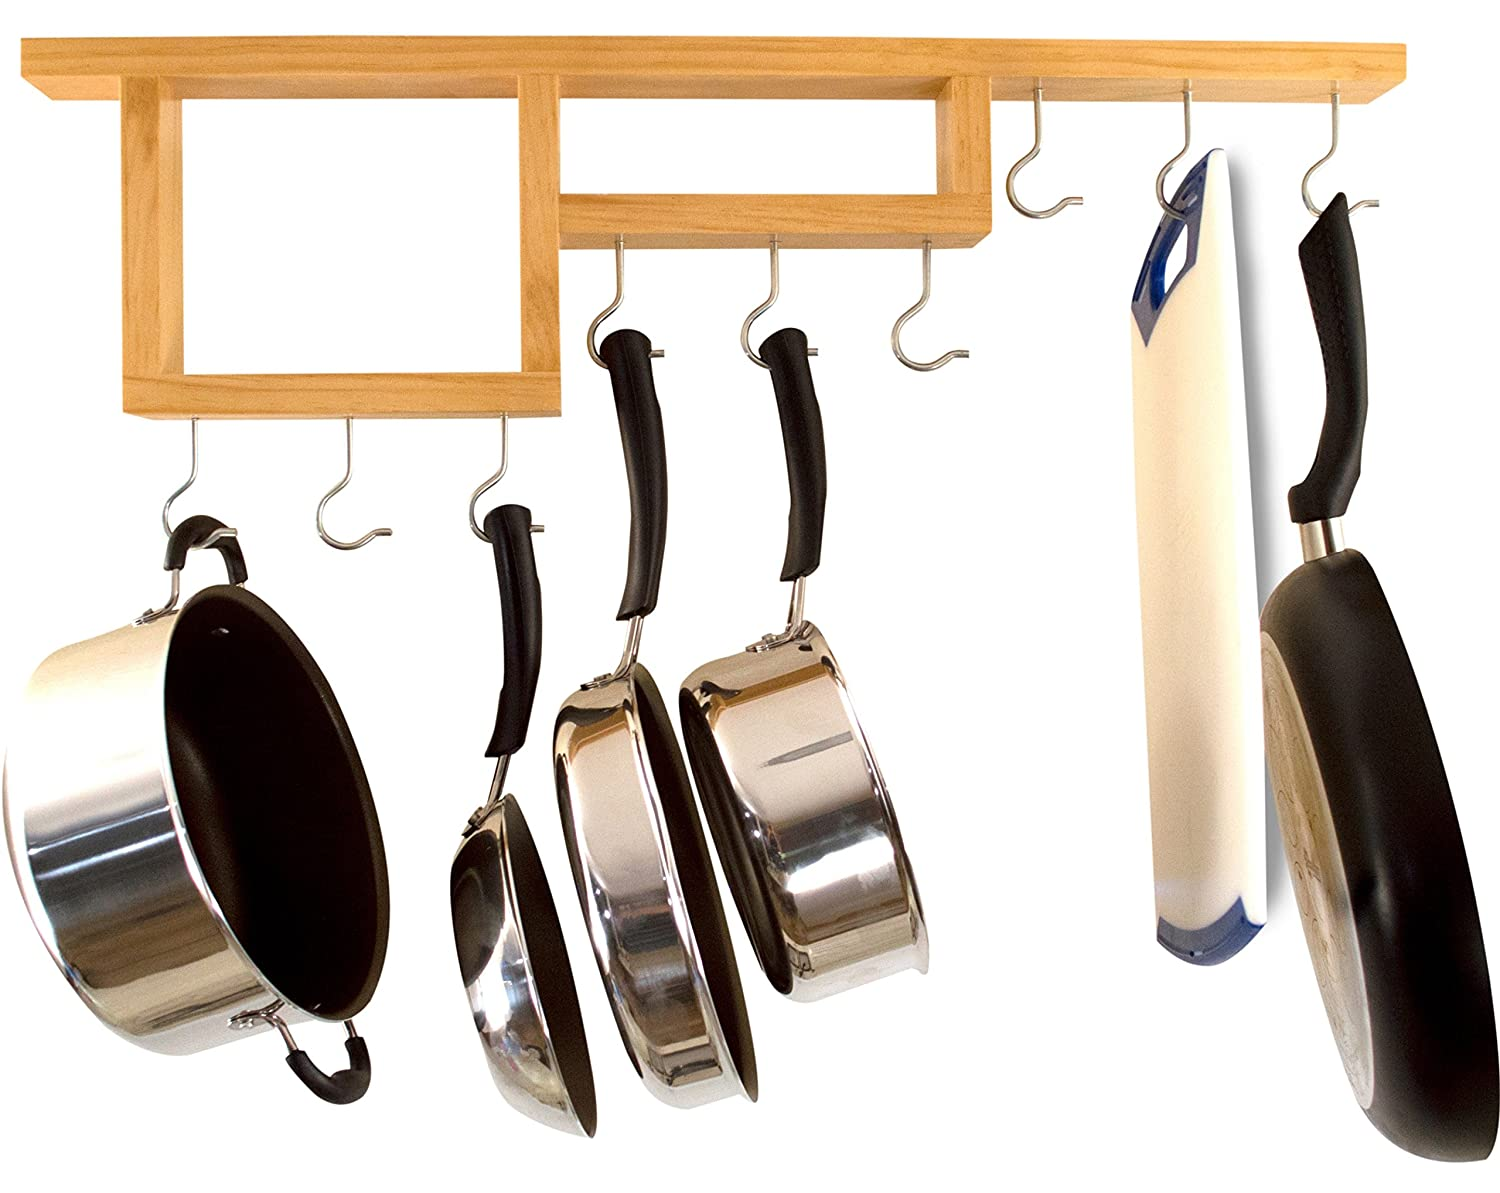 Pot Rack: Easy to Reach Ceiling Mount Solid-Wood Pan Hanger by HomeHarmony